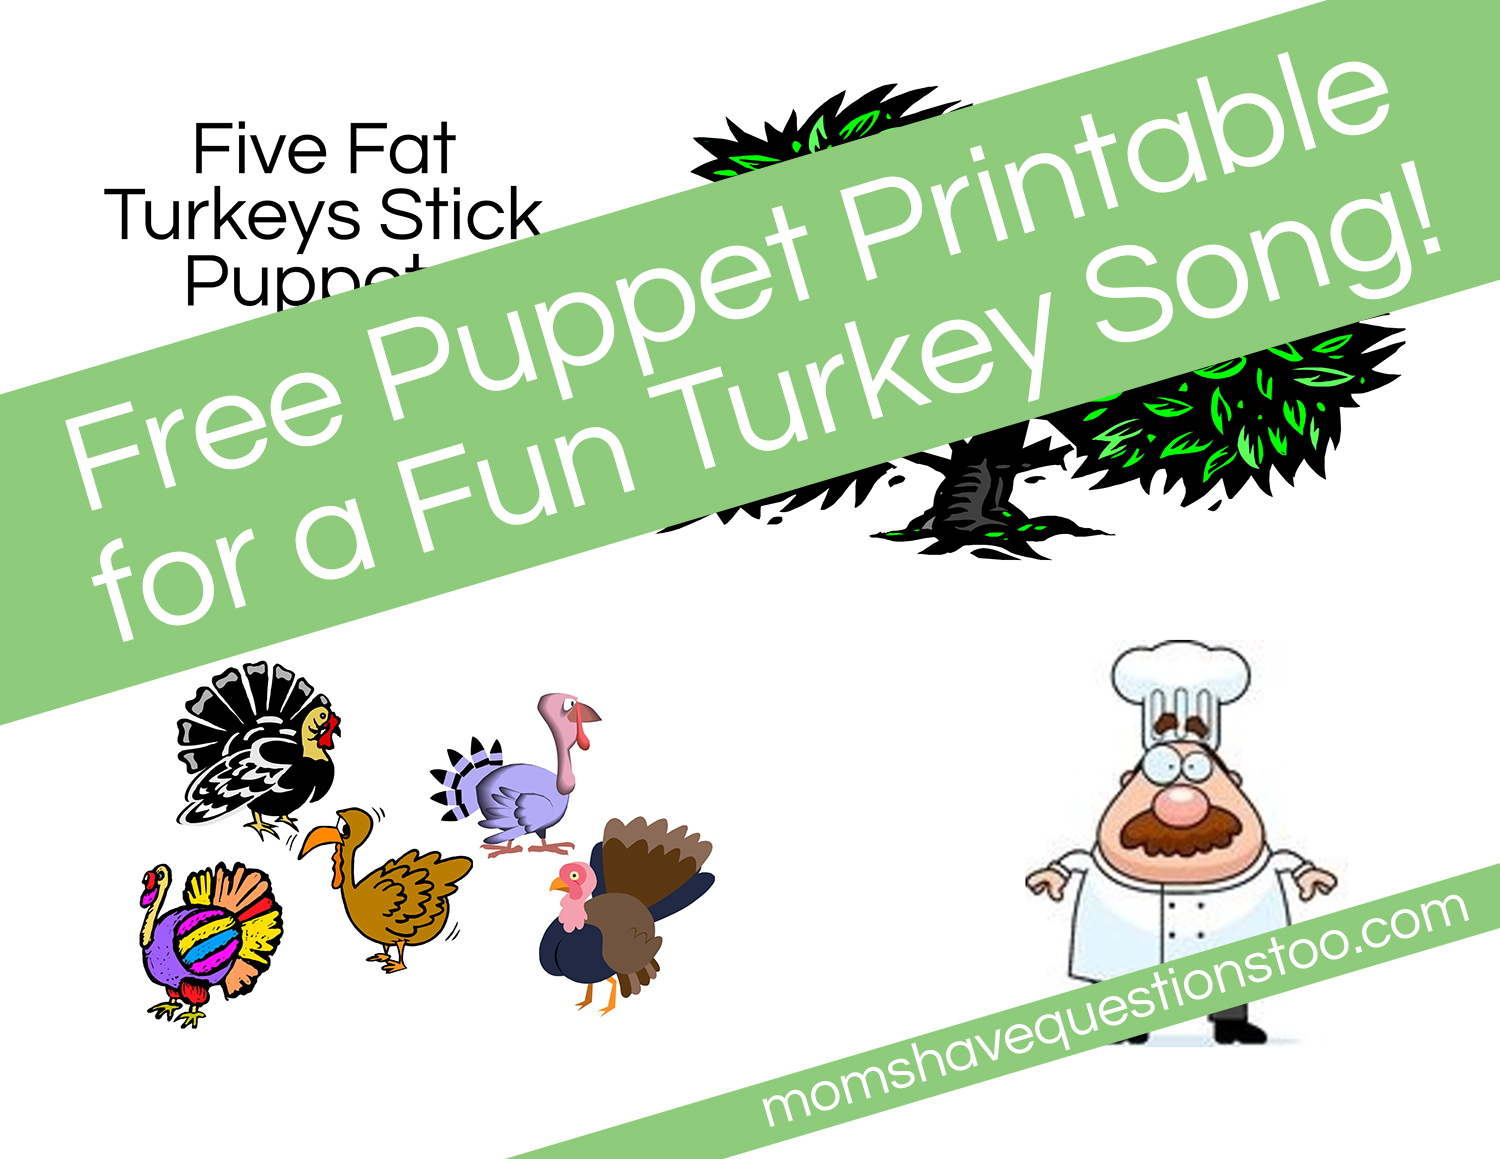 Five Fat Turkeys Song and Stick Puppets - Moms Have Questions Too